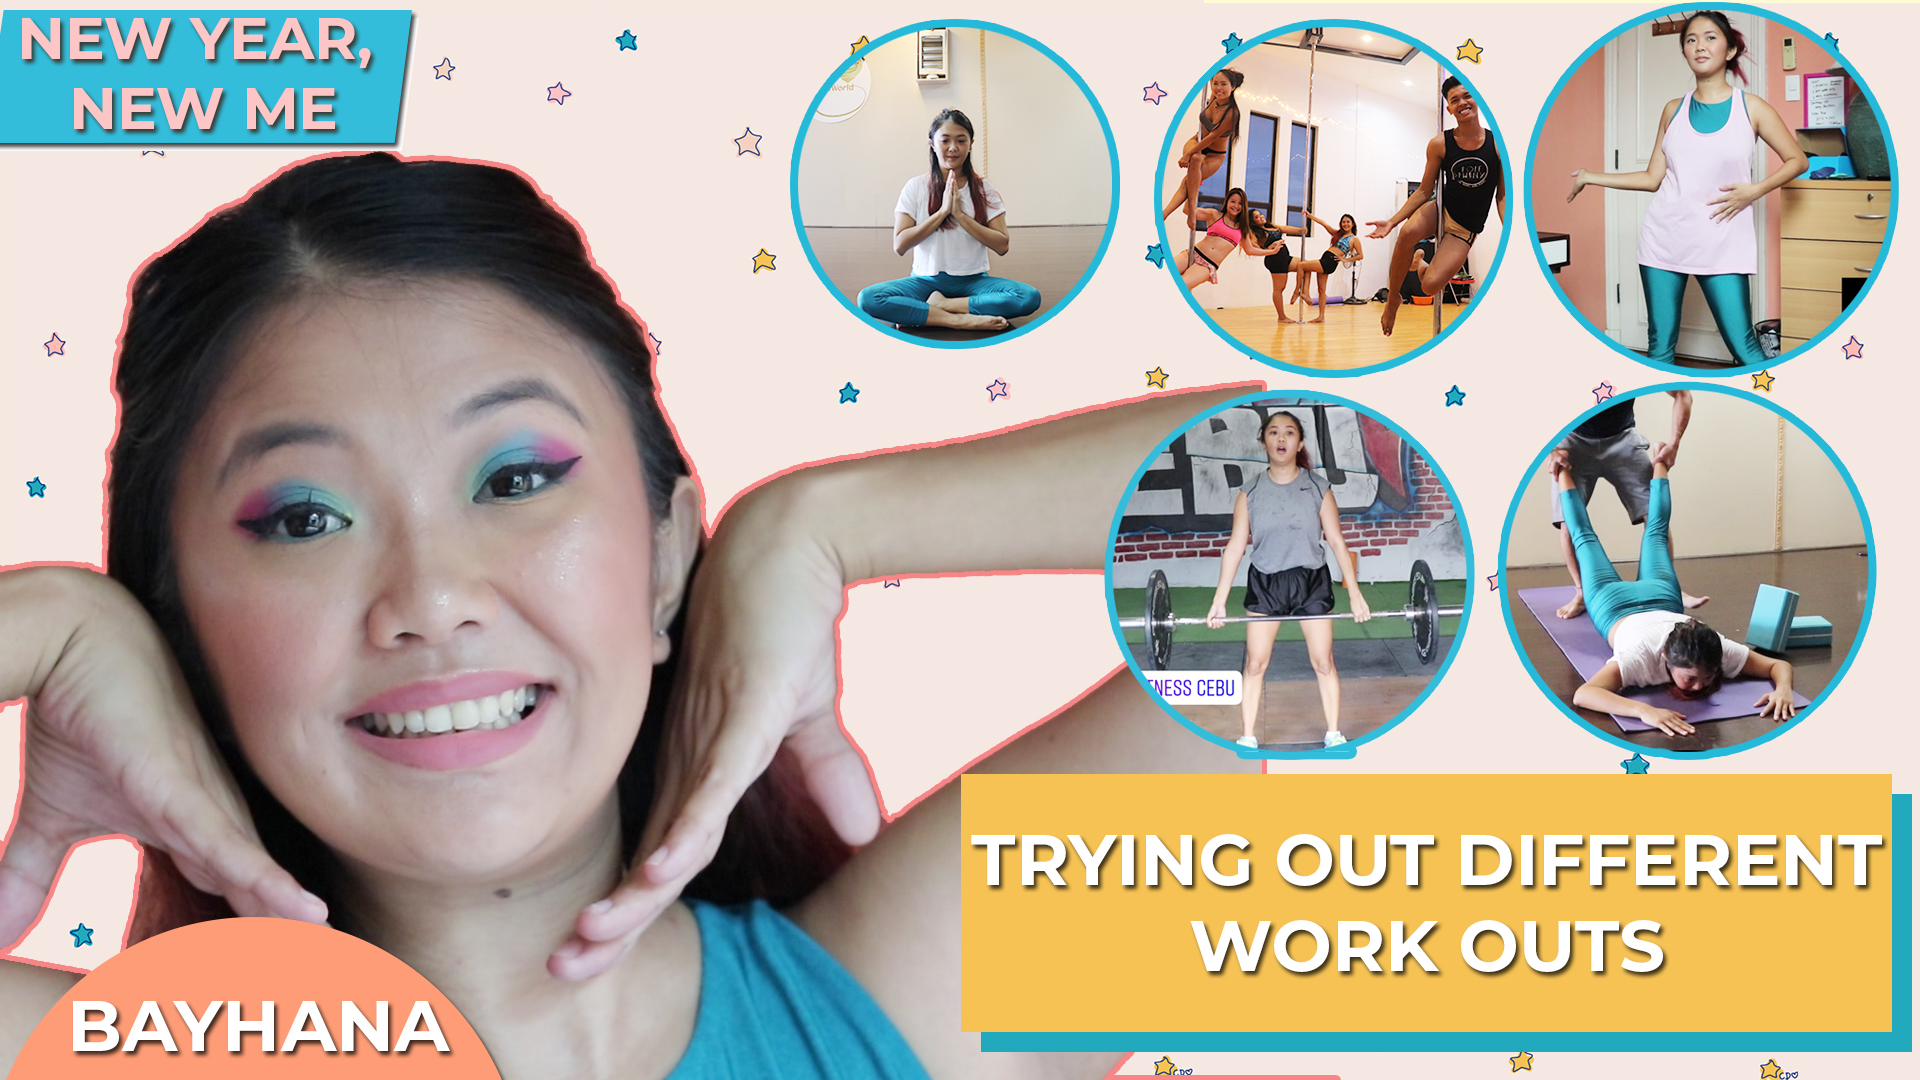 Bayhana| Trying Out Different Work Outs